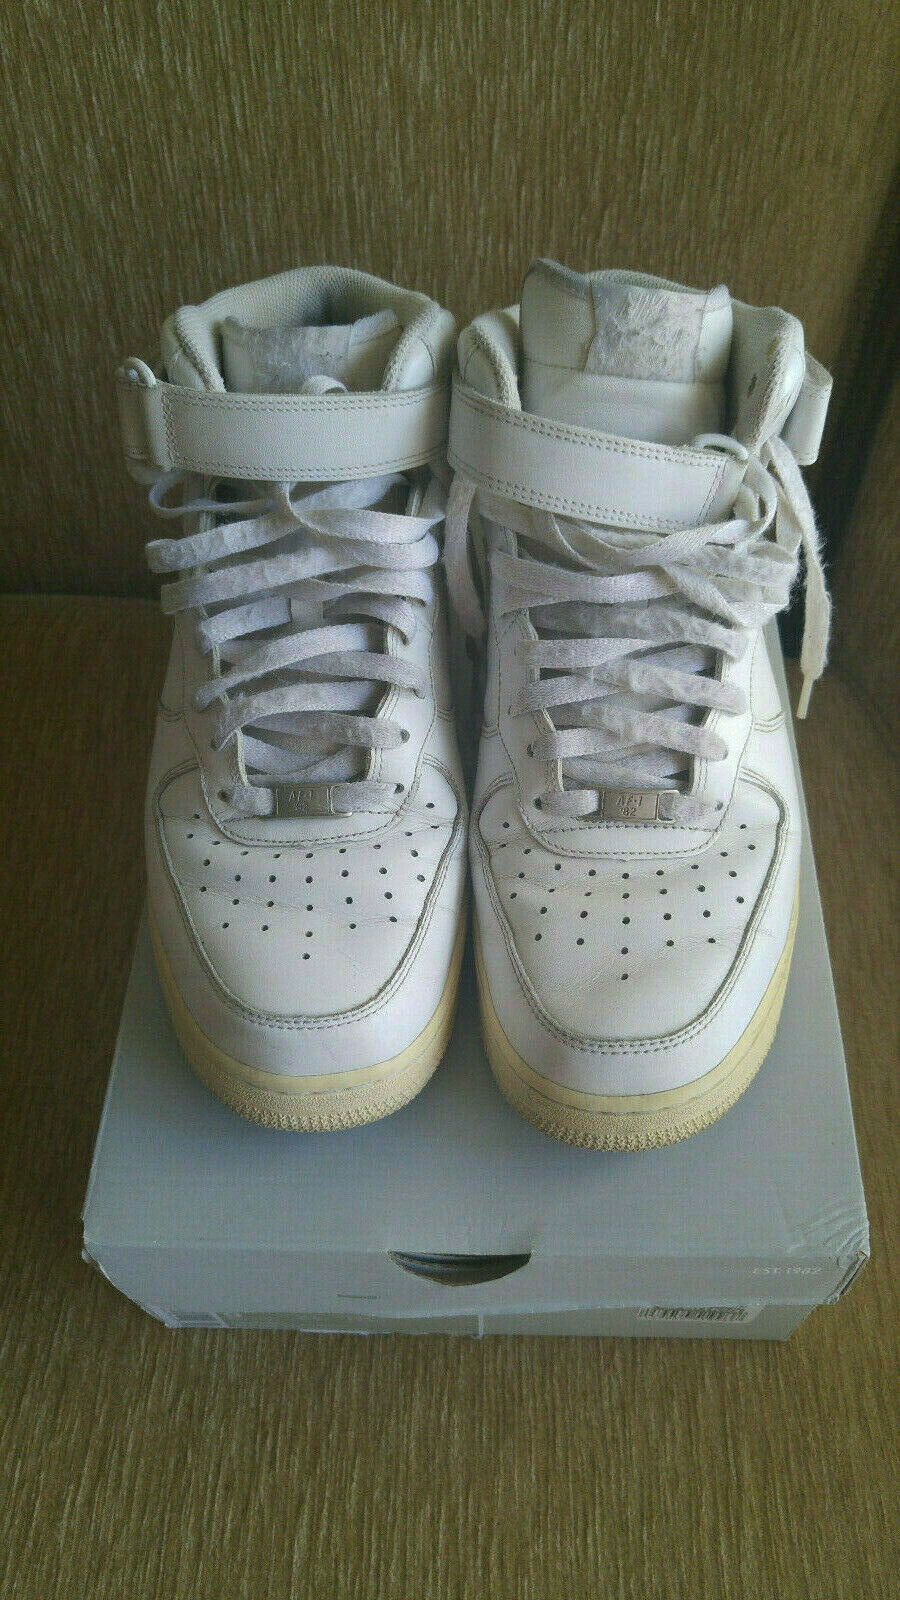 Nike white mid-top Air Force 1 sneakers, 9